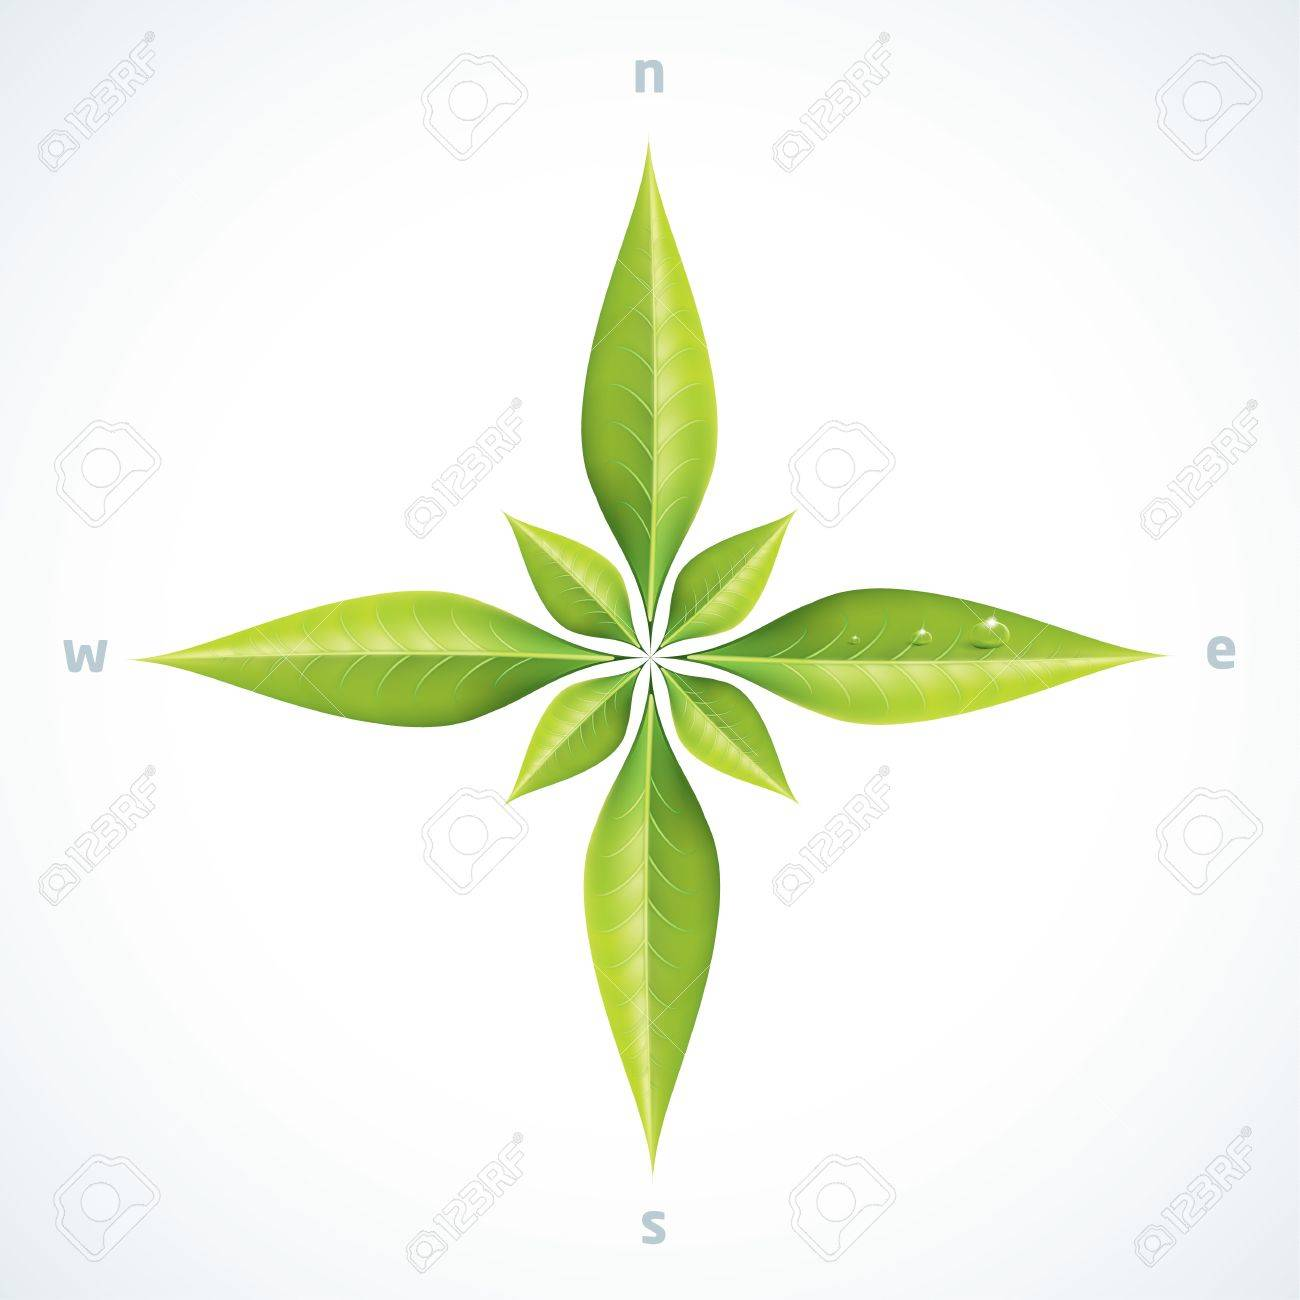 Eco green leafs compass rose - 19891825